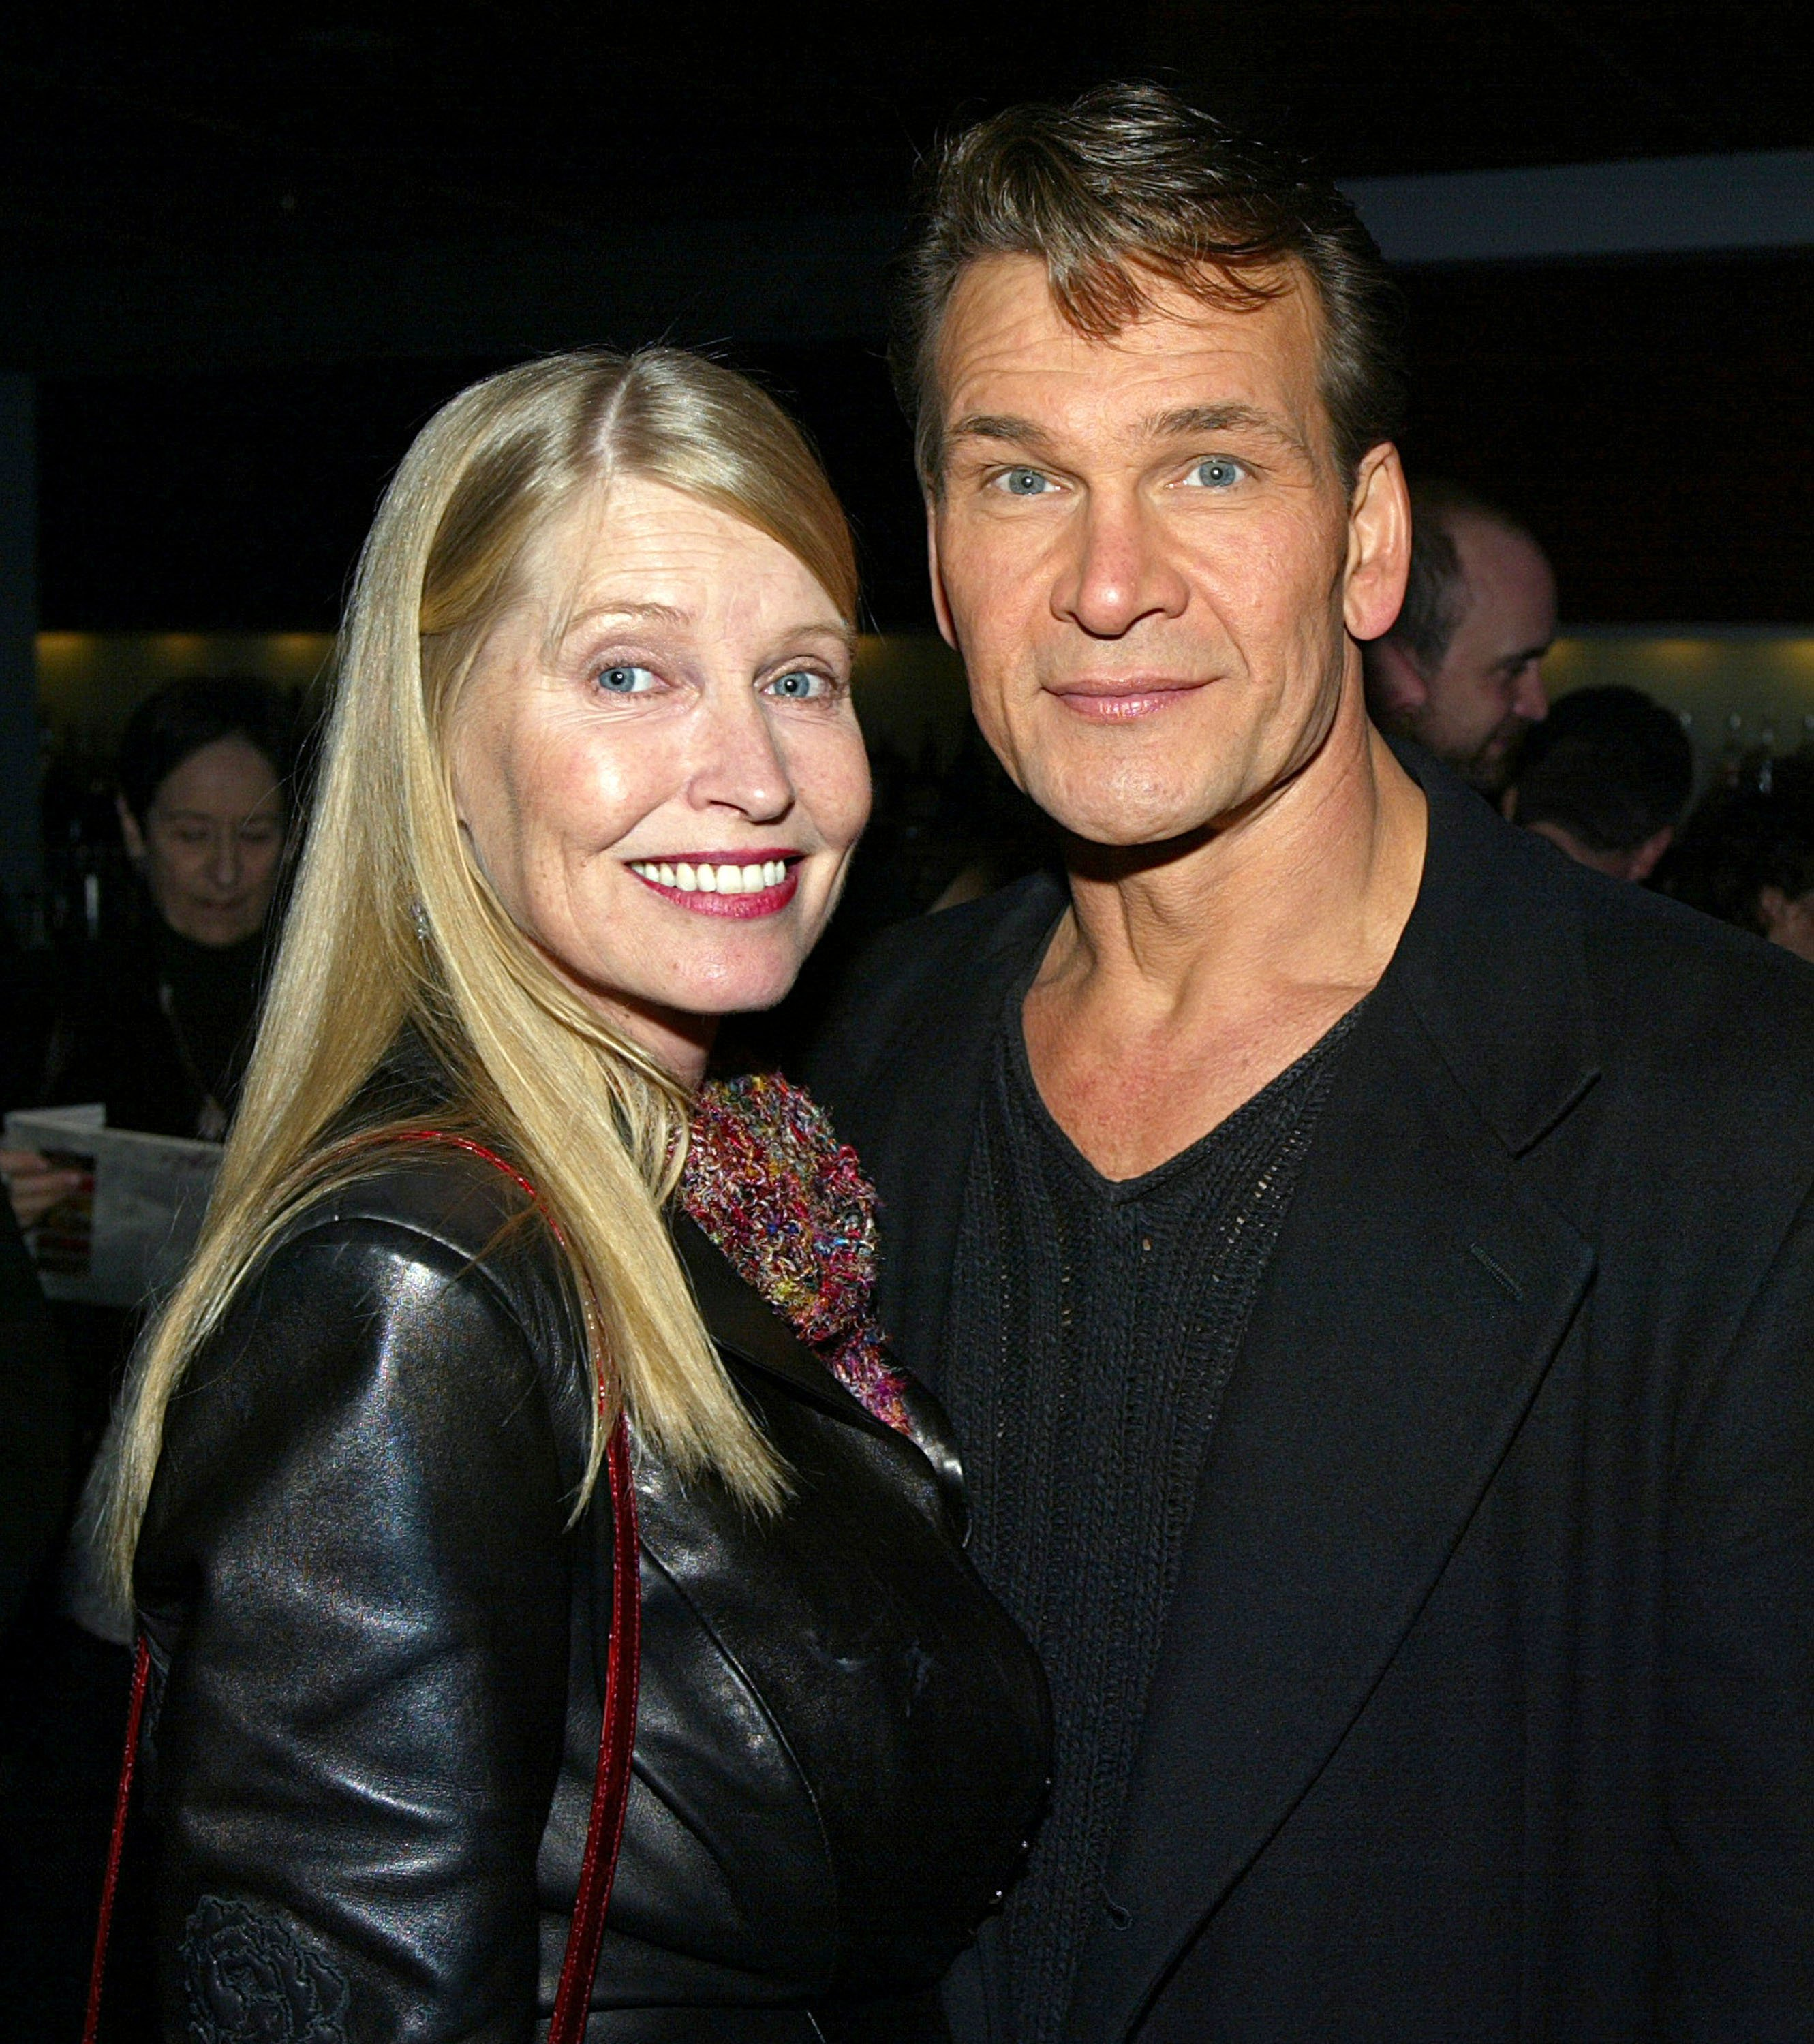 The late Patrick Swayze and his wife Lisa Niemi | Photo: Getty Images